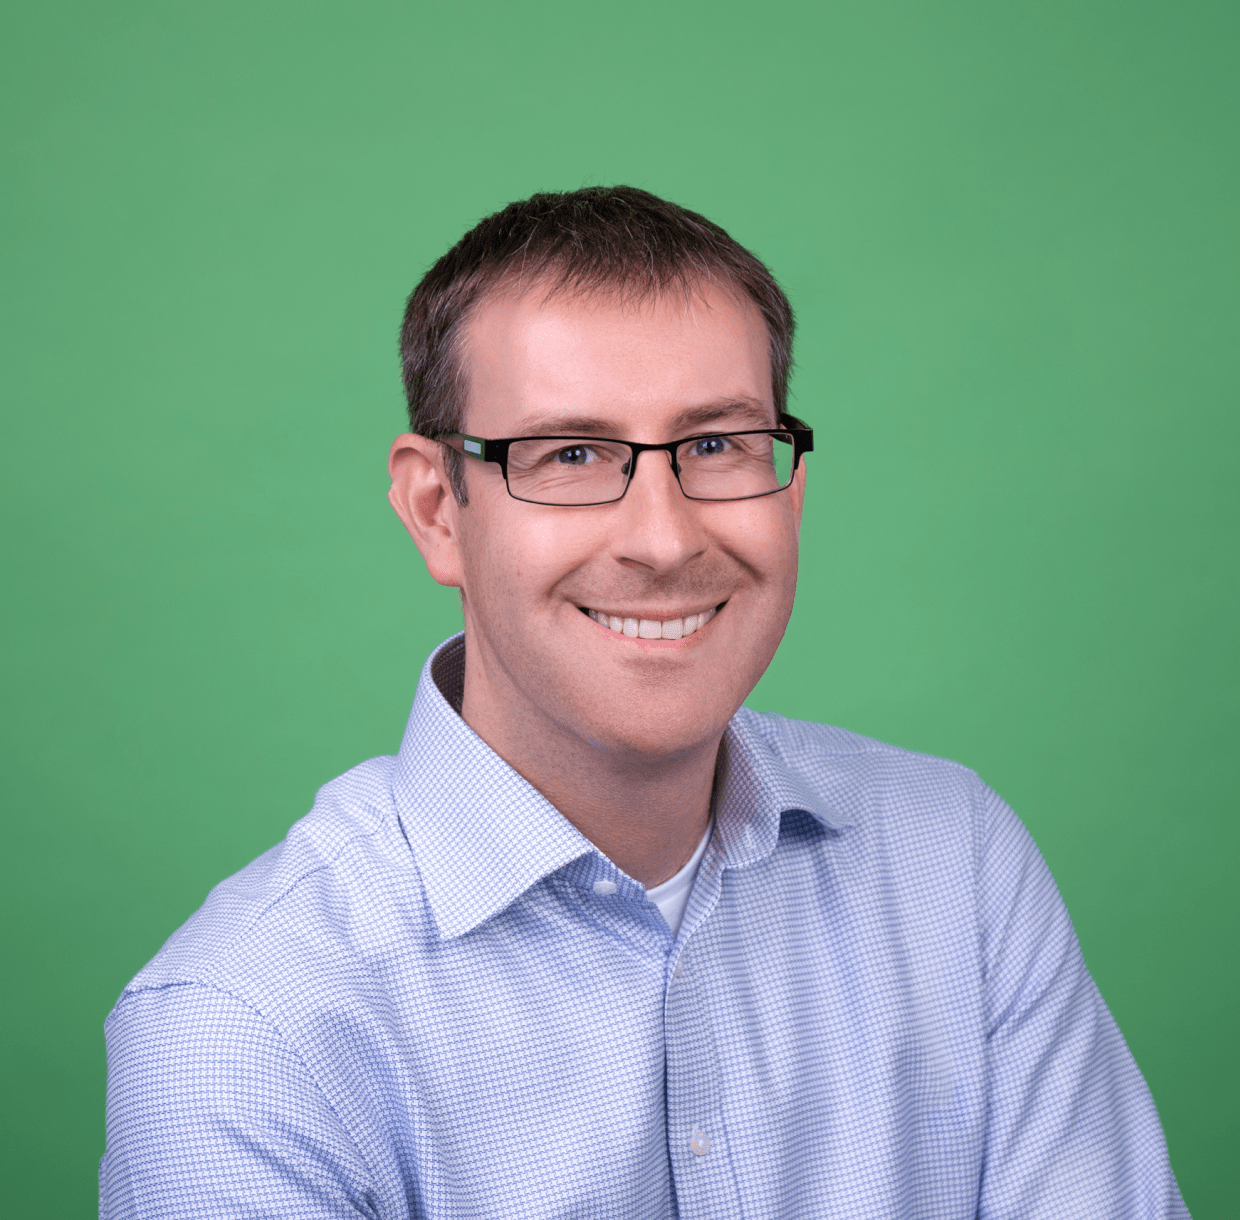 Corporate photo of David Cole, Trustpilot's Head of Enforcement